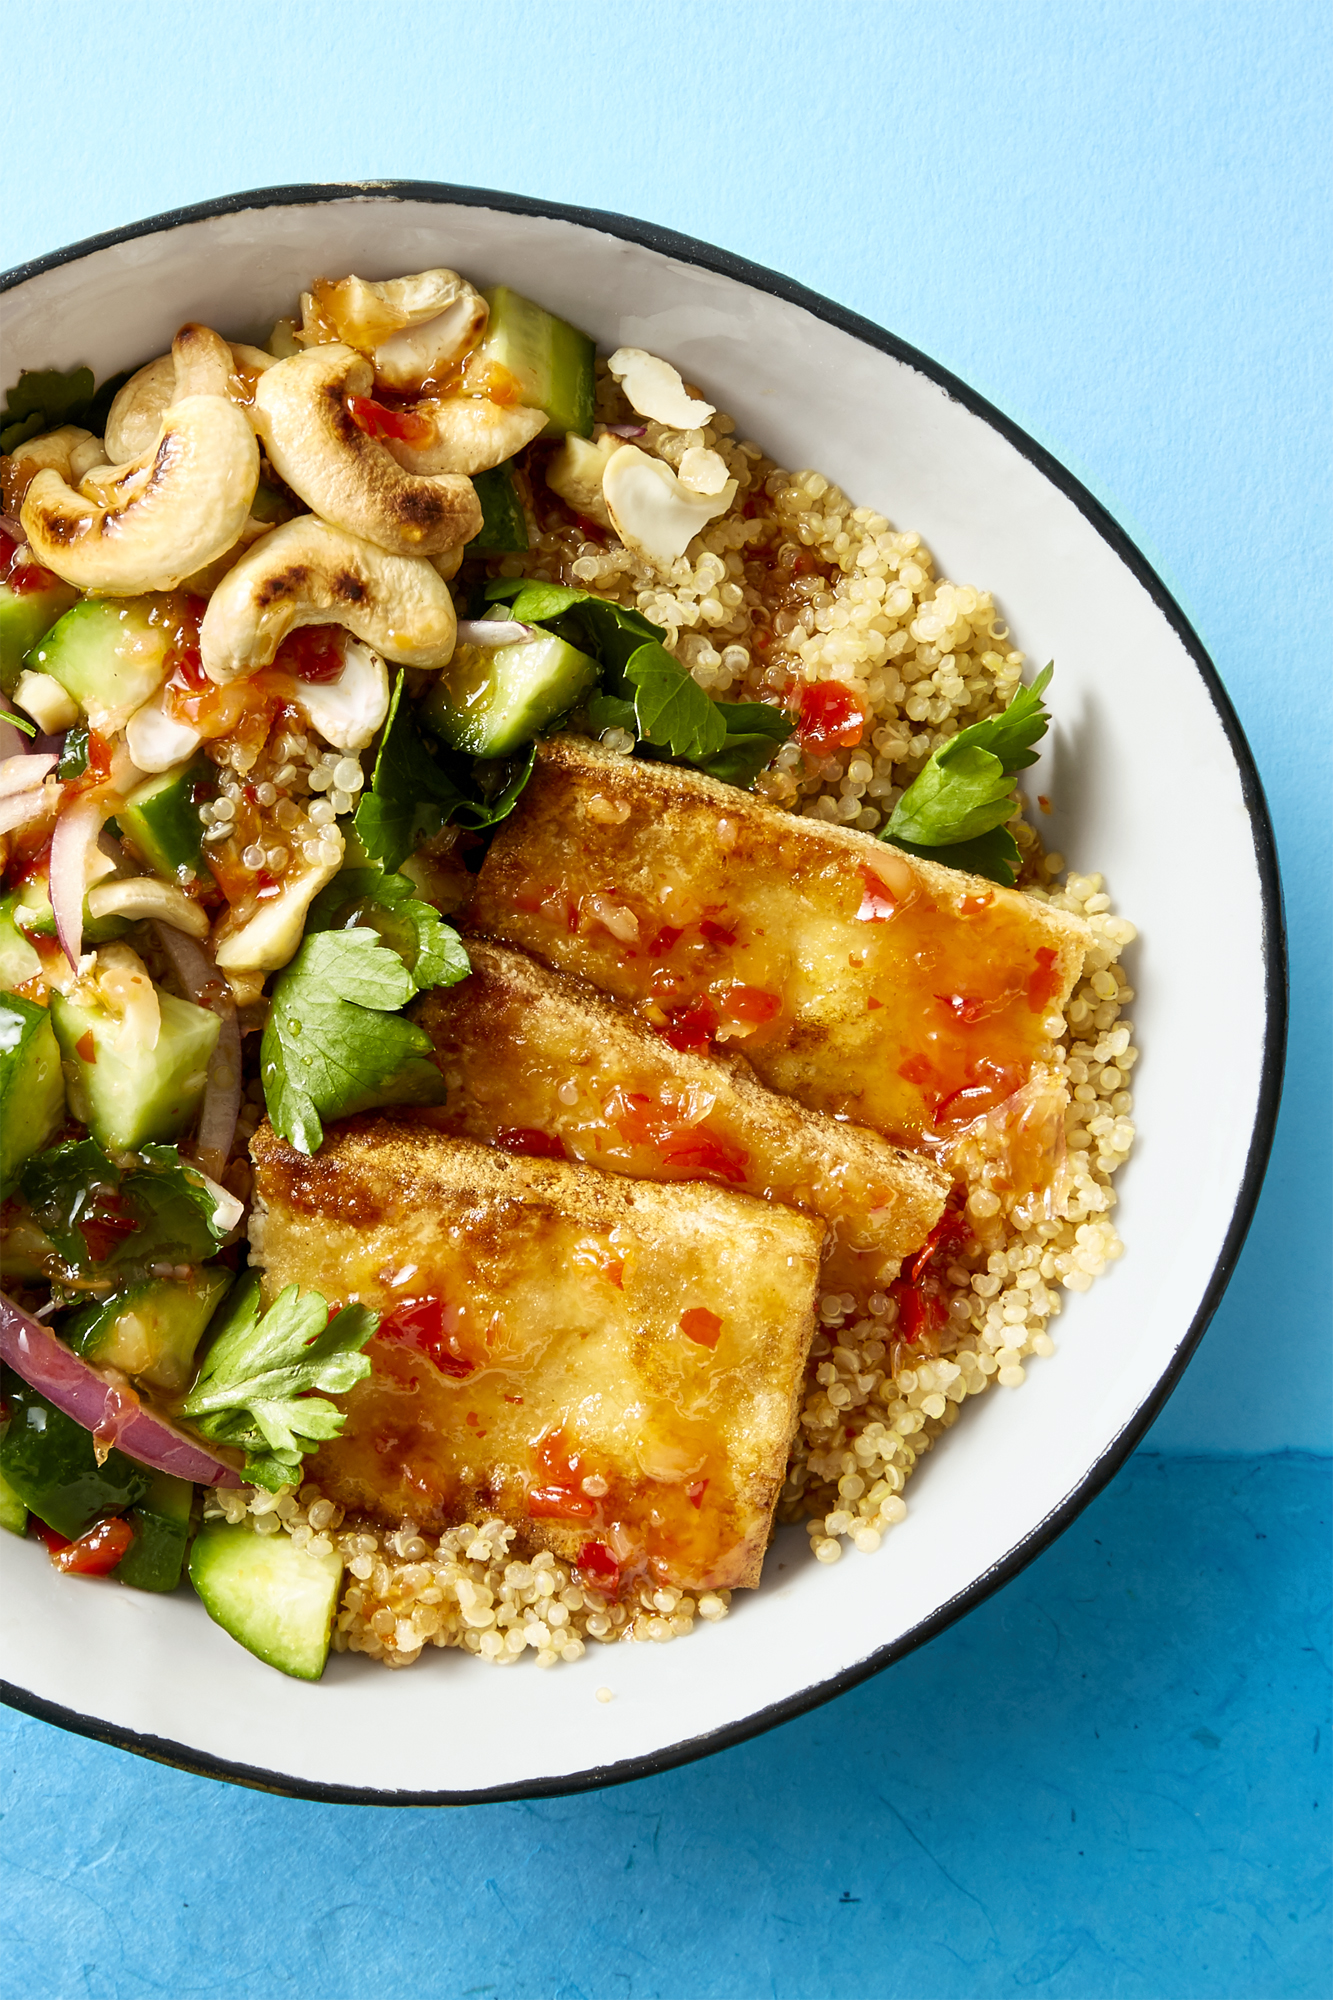 Quick & Easy Vegetarian Recipes Quick & Easy Vegetarian Recipes Find healthy, delicious quick and easy vegetarian recipes, from the food and nutrition experts at EatingWell.